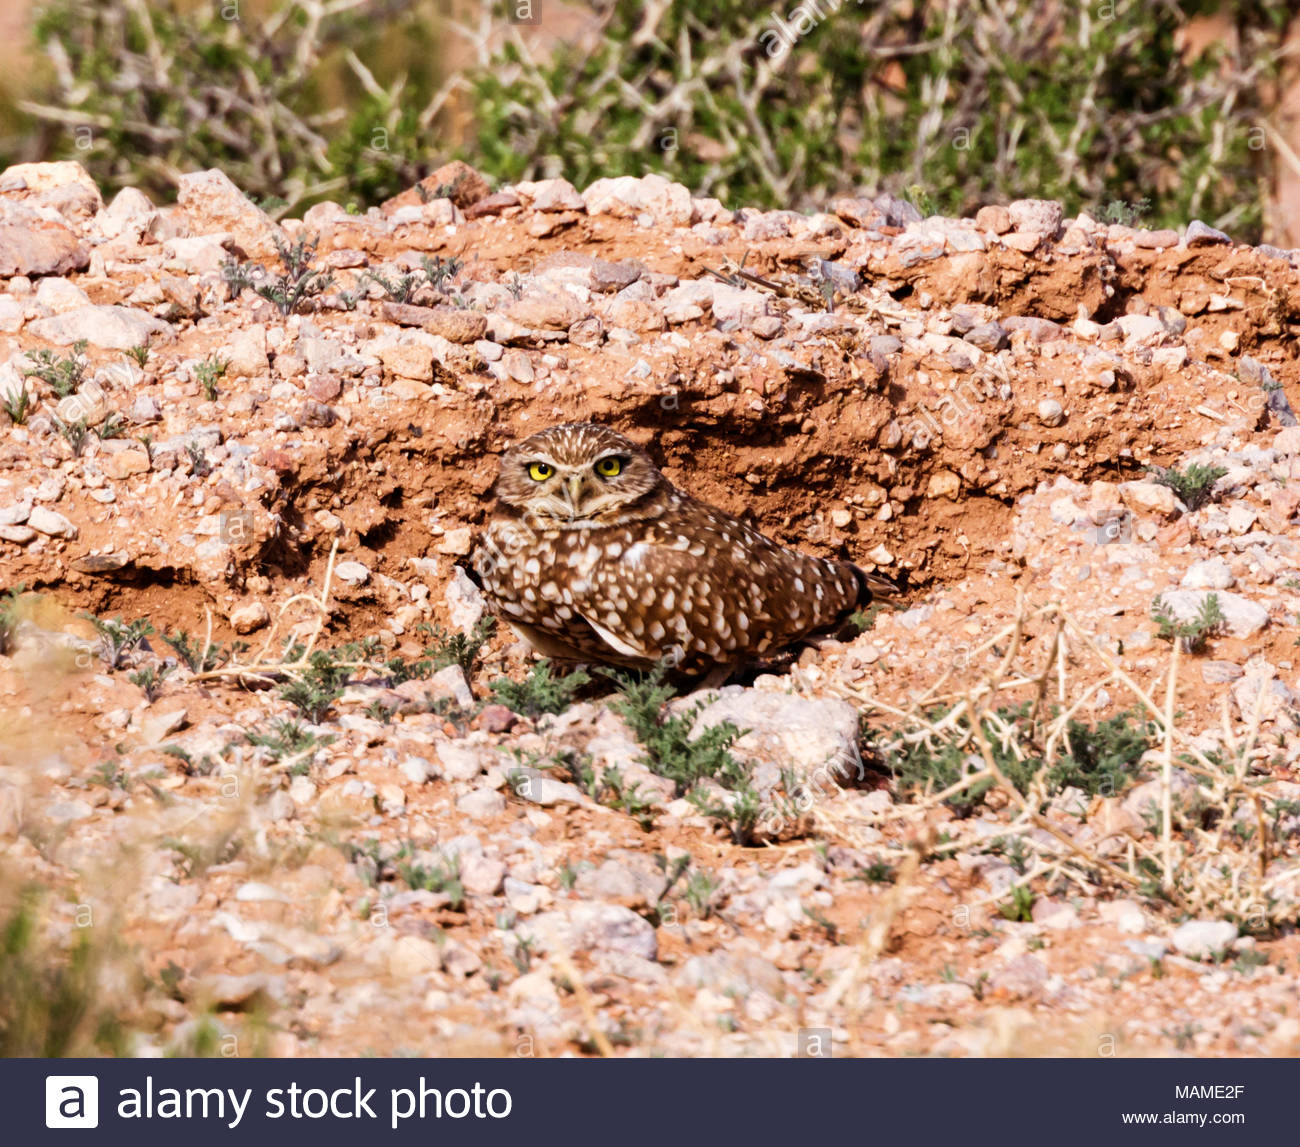 burrowing-owl-athene-cunicularia-standing-in-front-of-burrow-new-mexico-usa-MAME2F.jpg